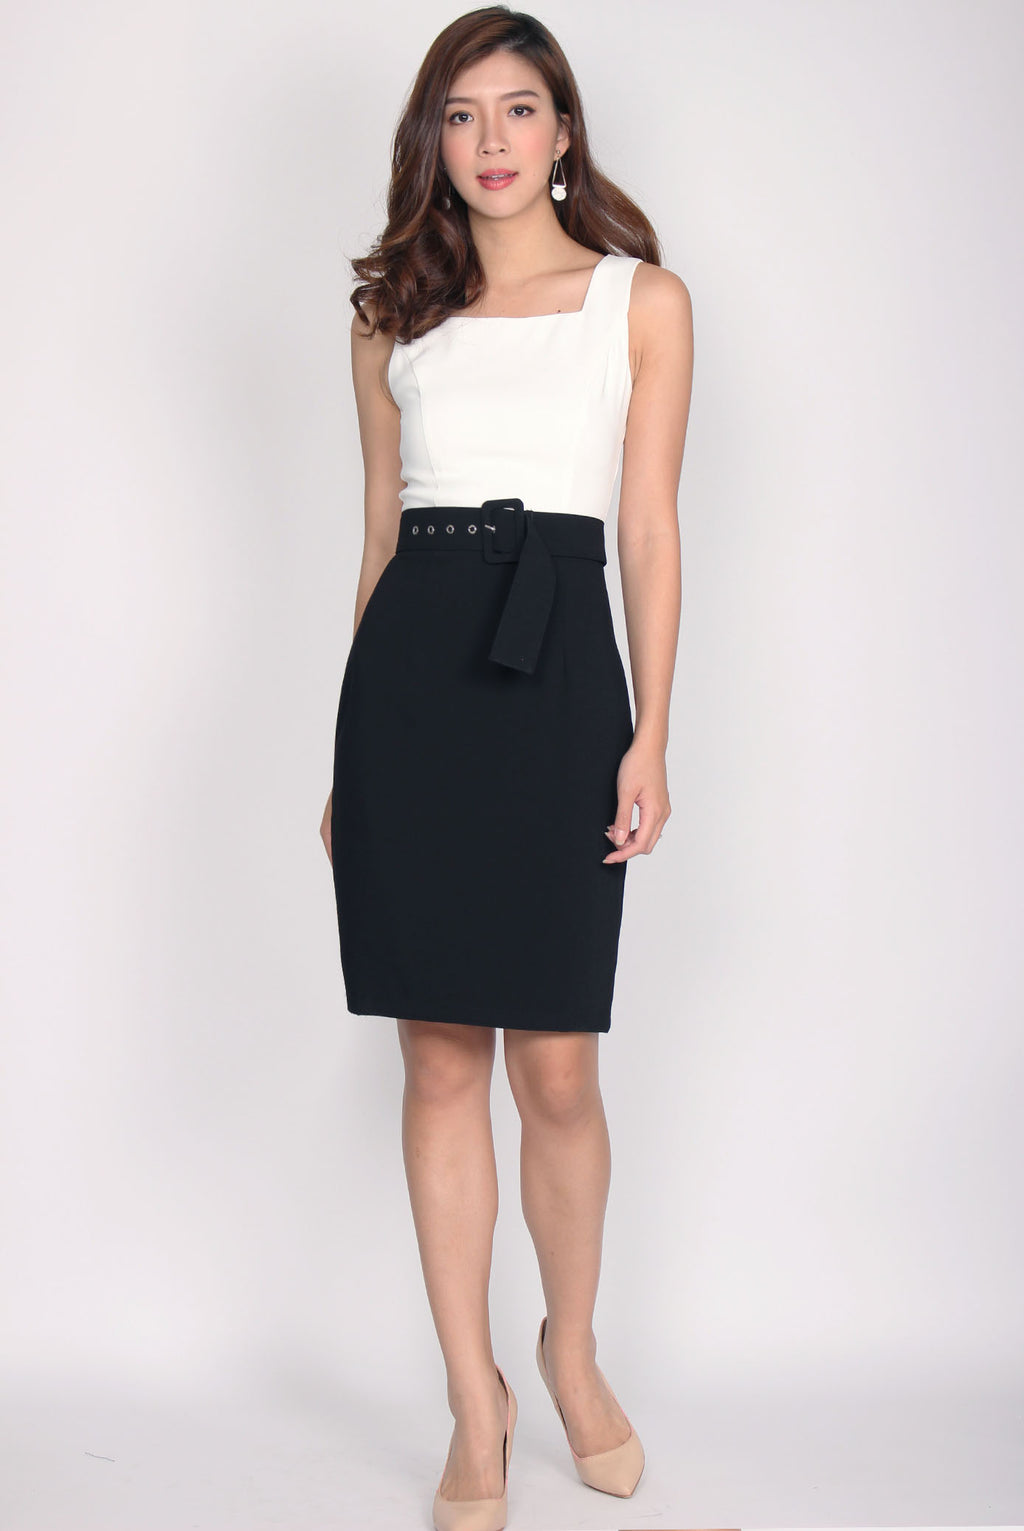 *RESTOCK* Adecyn Belted Work Dress In Black